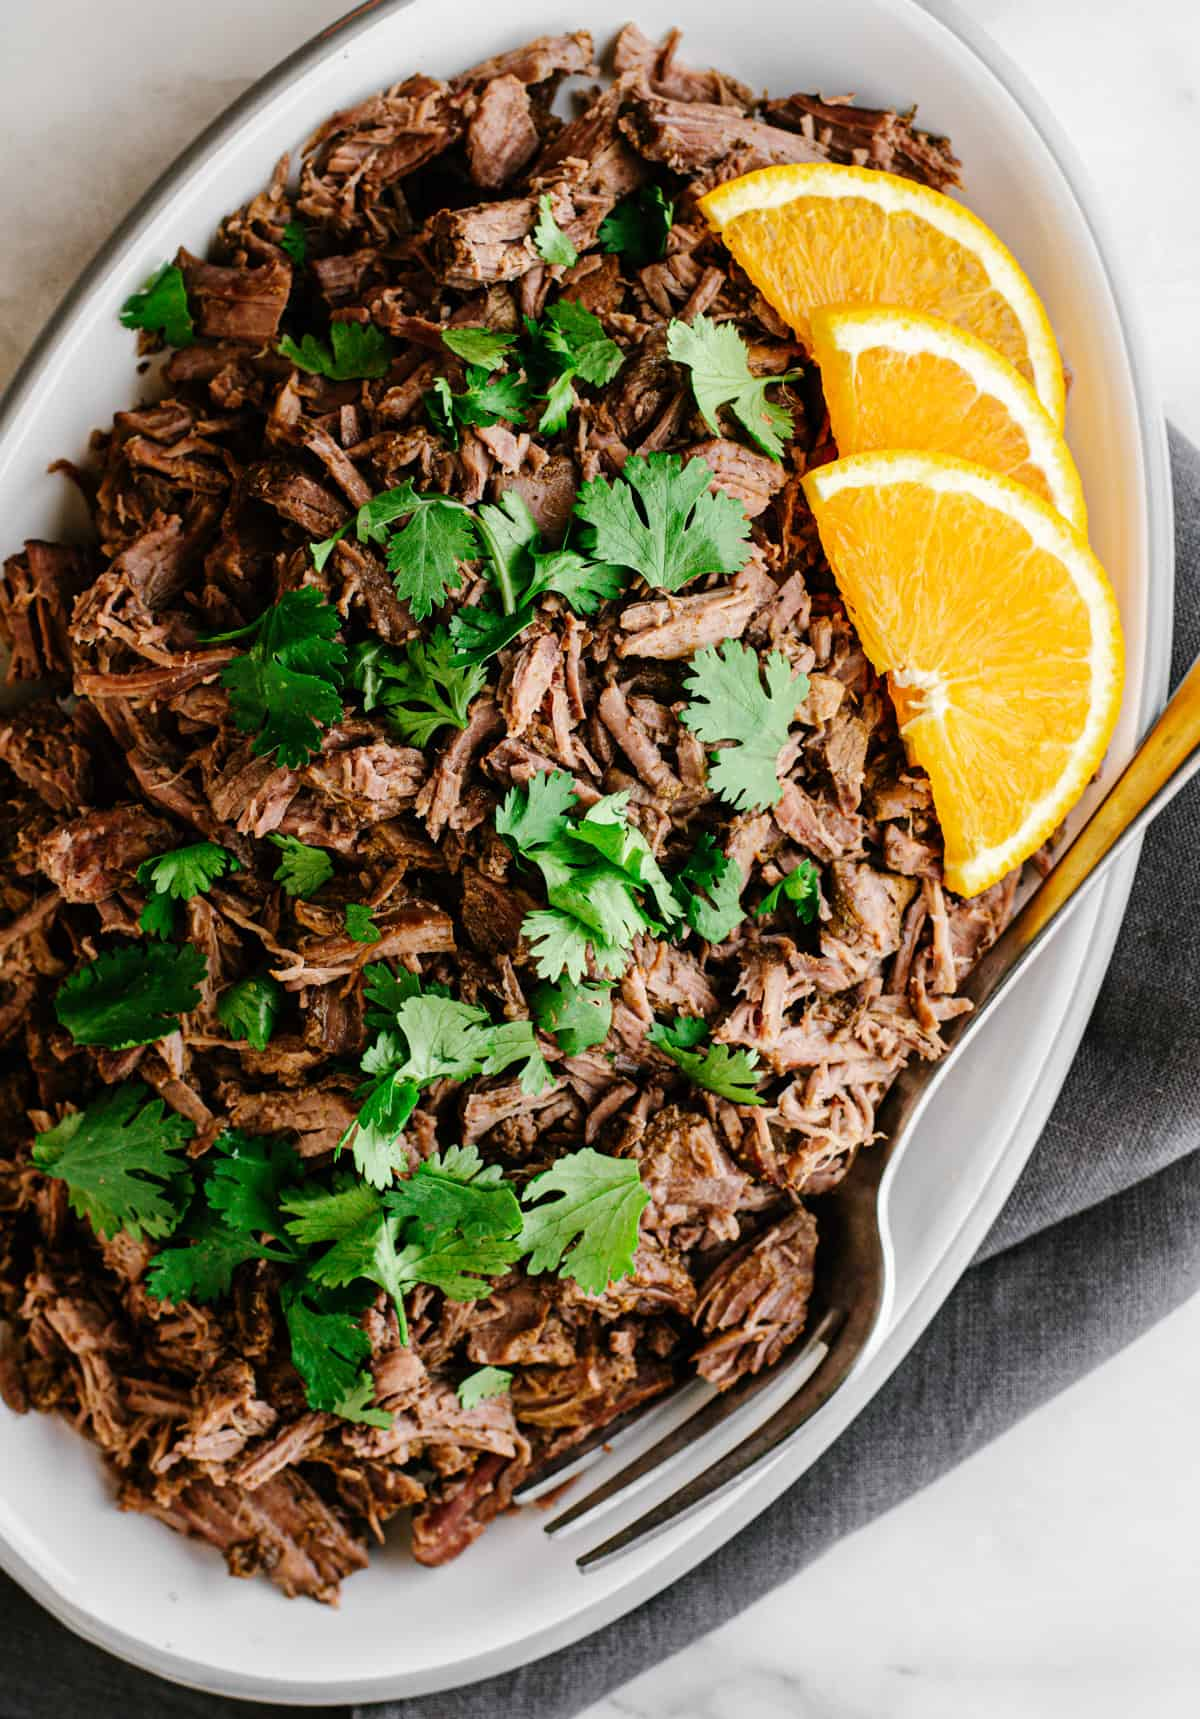 shredded lamb barbacoa served on an oval platter photographed from above.